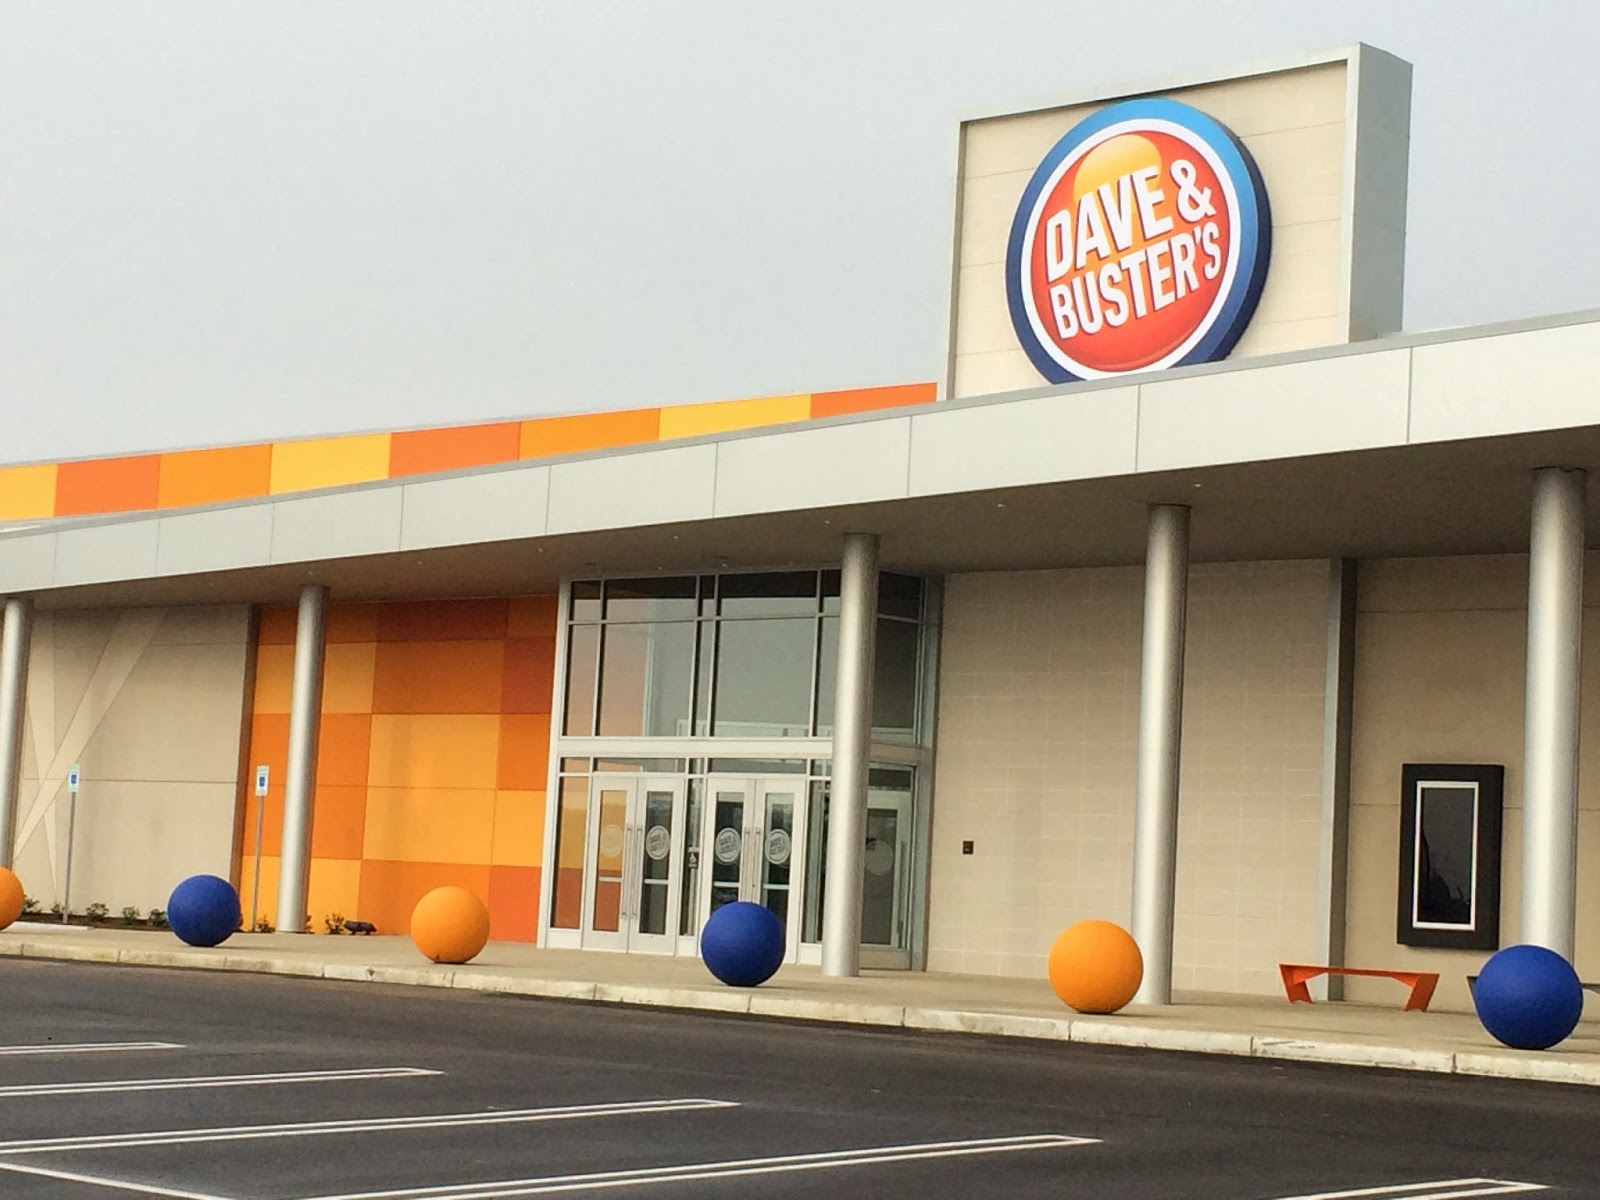 I love Dave & Busters, but this is not their best location. The service, food, games and everything are fine, but the one in Utica has a dining room and bar separate from the midway as well as 5/10().